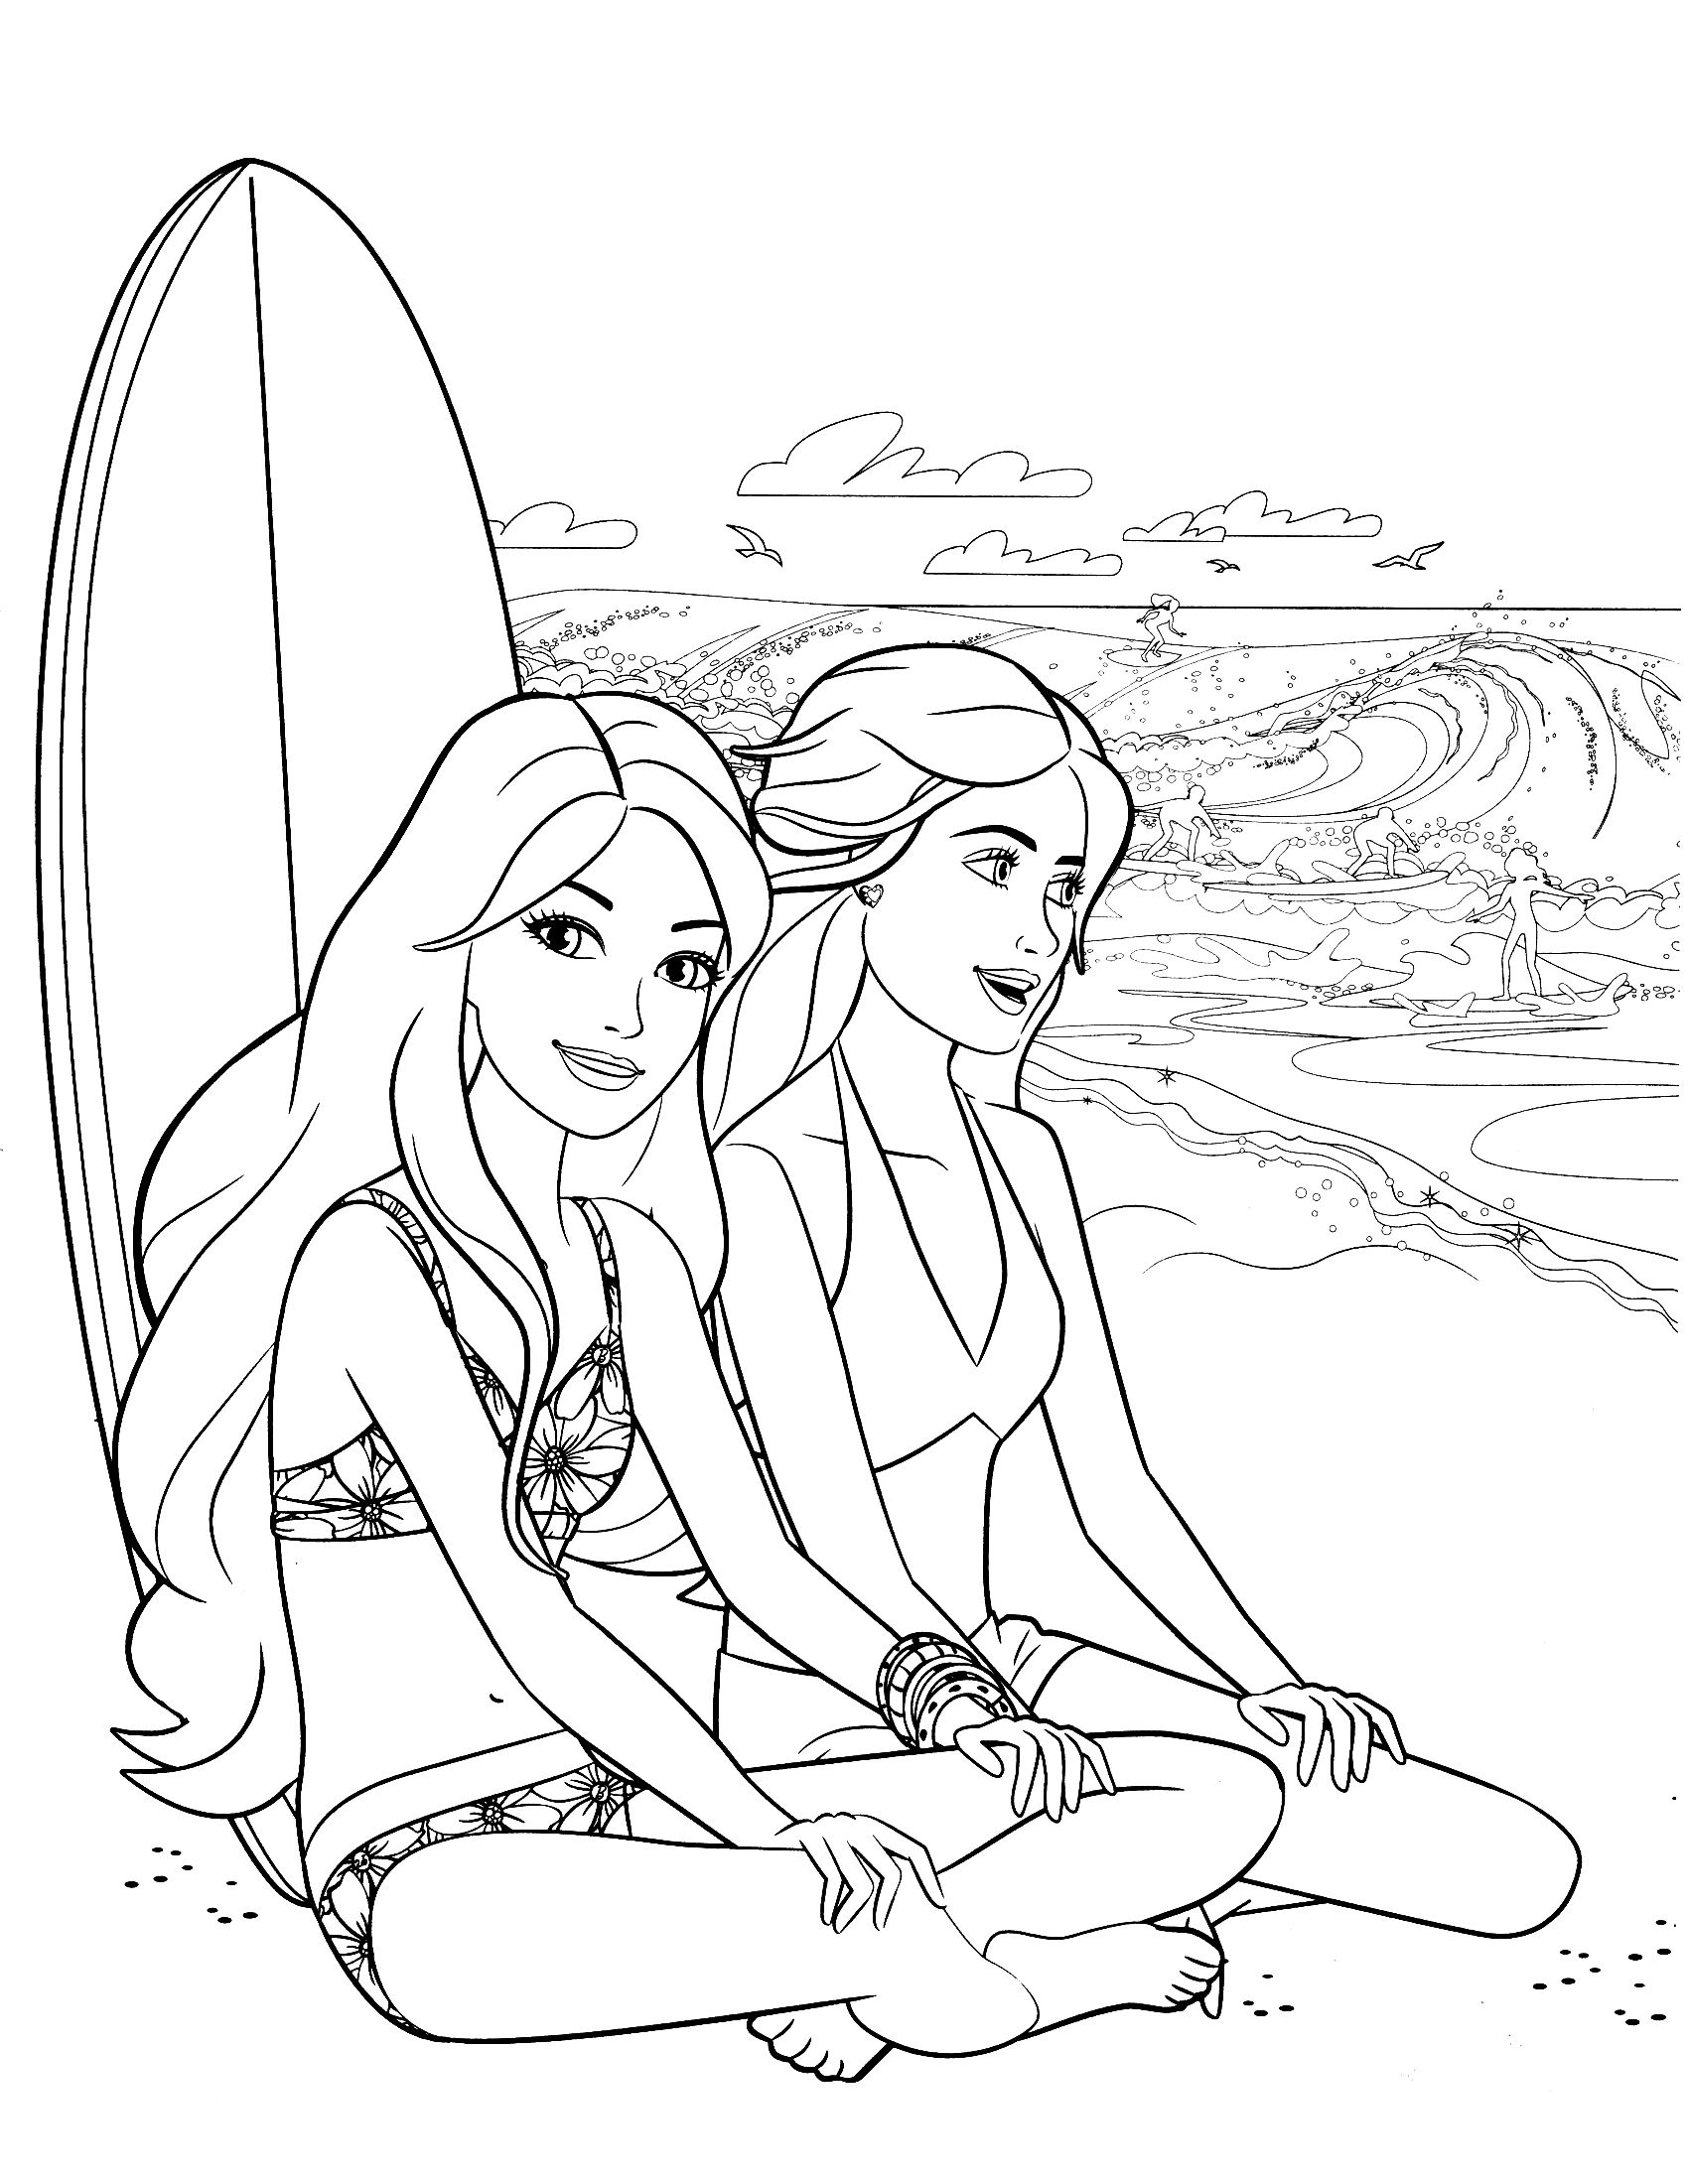 barbie doll colouring pictures 20 barbie coloring pages doc pdf png jpeg eps doll colouring pictures barbie